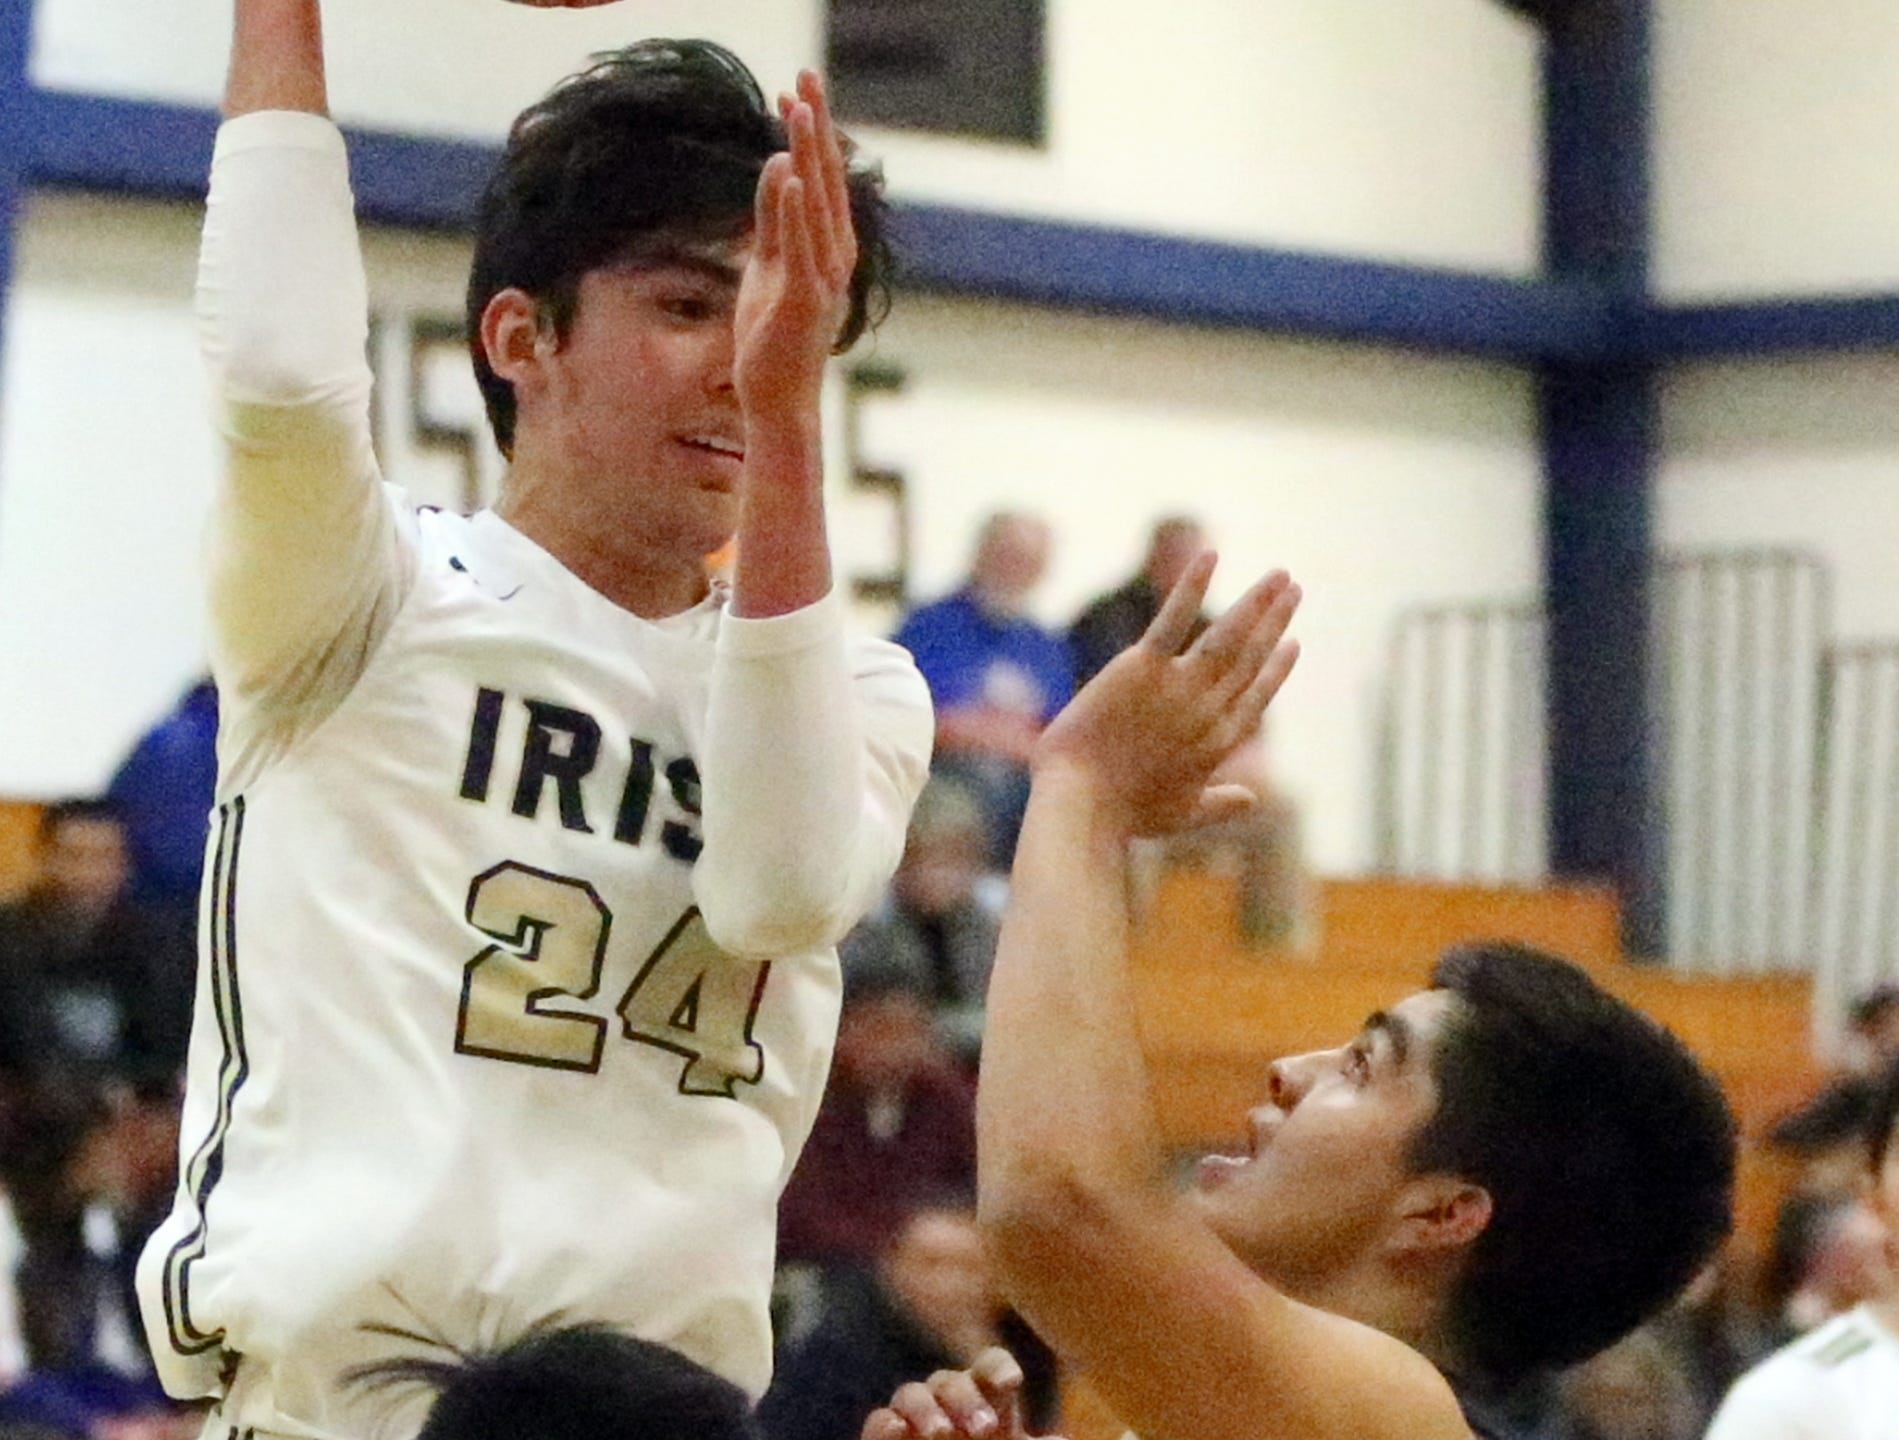 Cathedral hosted Americas in prep boy's basketball action Tuesday night.